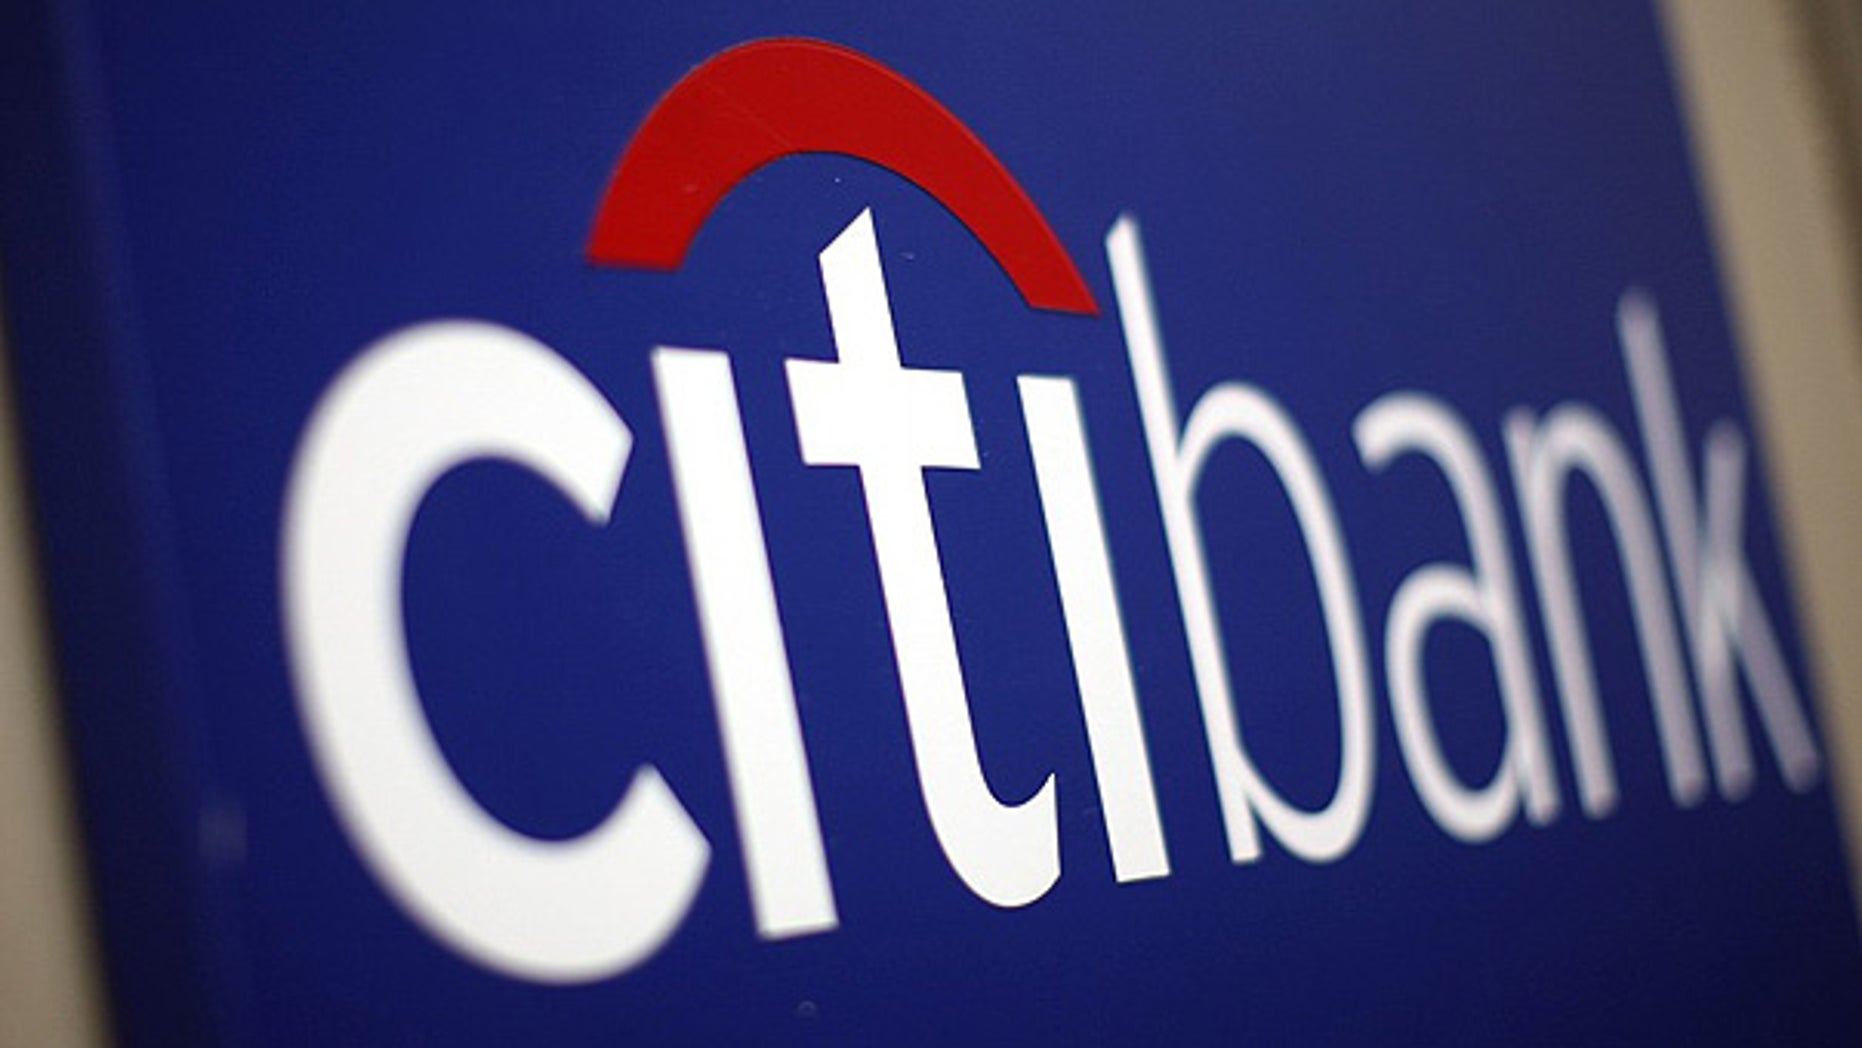 Citi: Hackers Tapped Into Data of 200G Card Holders | Fox News